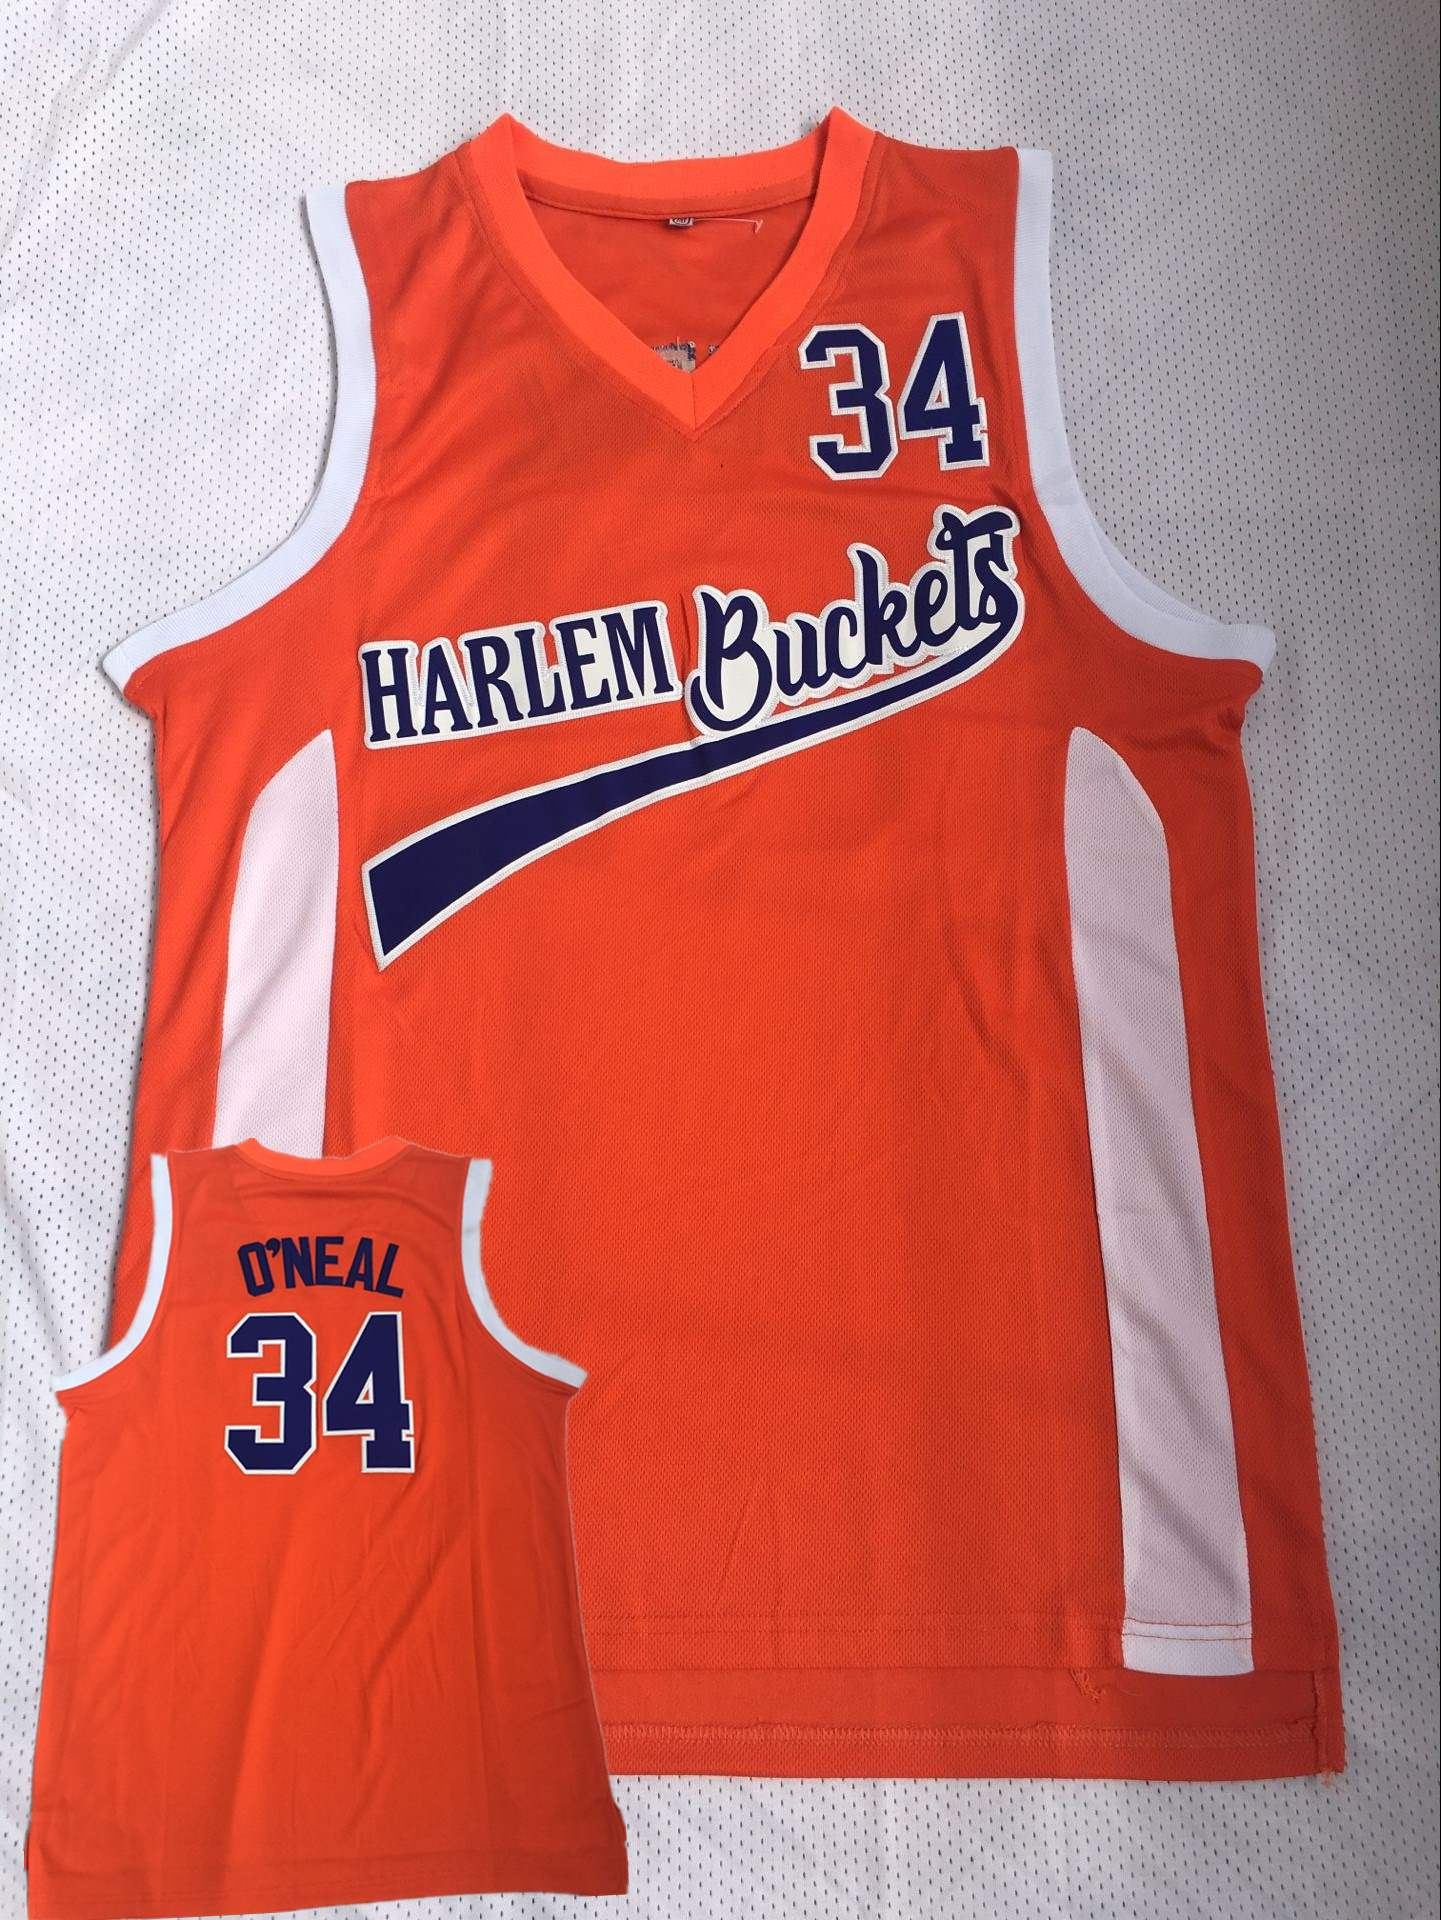 Harlem Buckets 34 O'Neal Orange Uncle Drew Movie Basketball Jersey